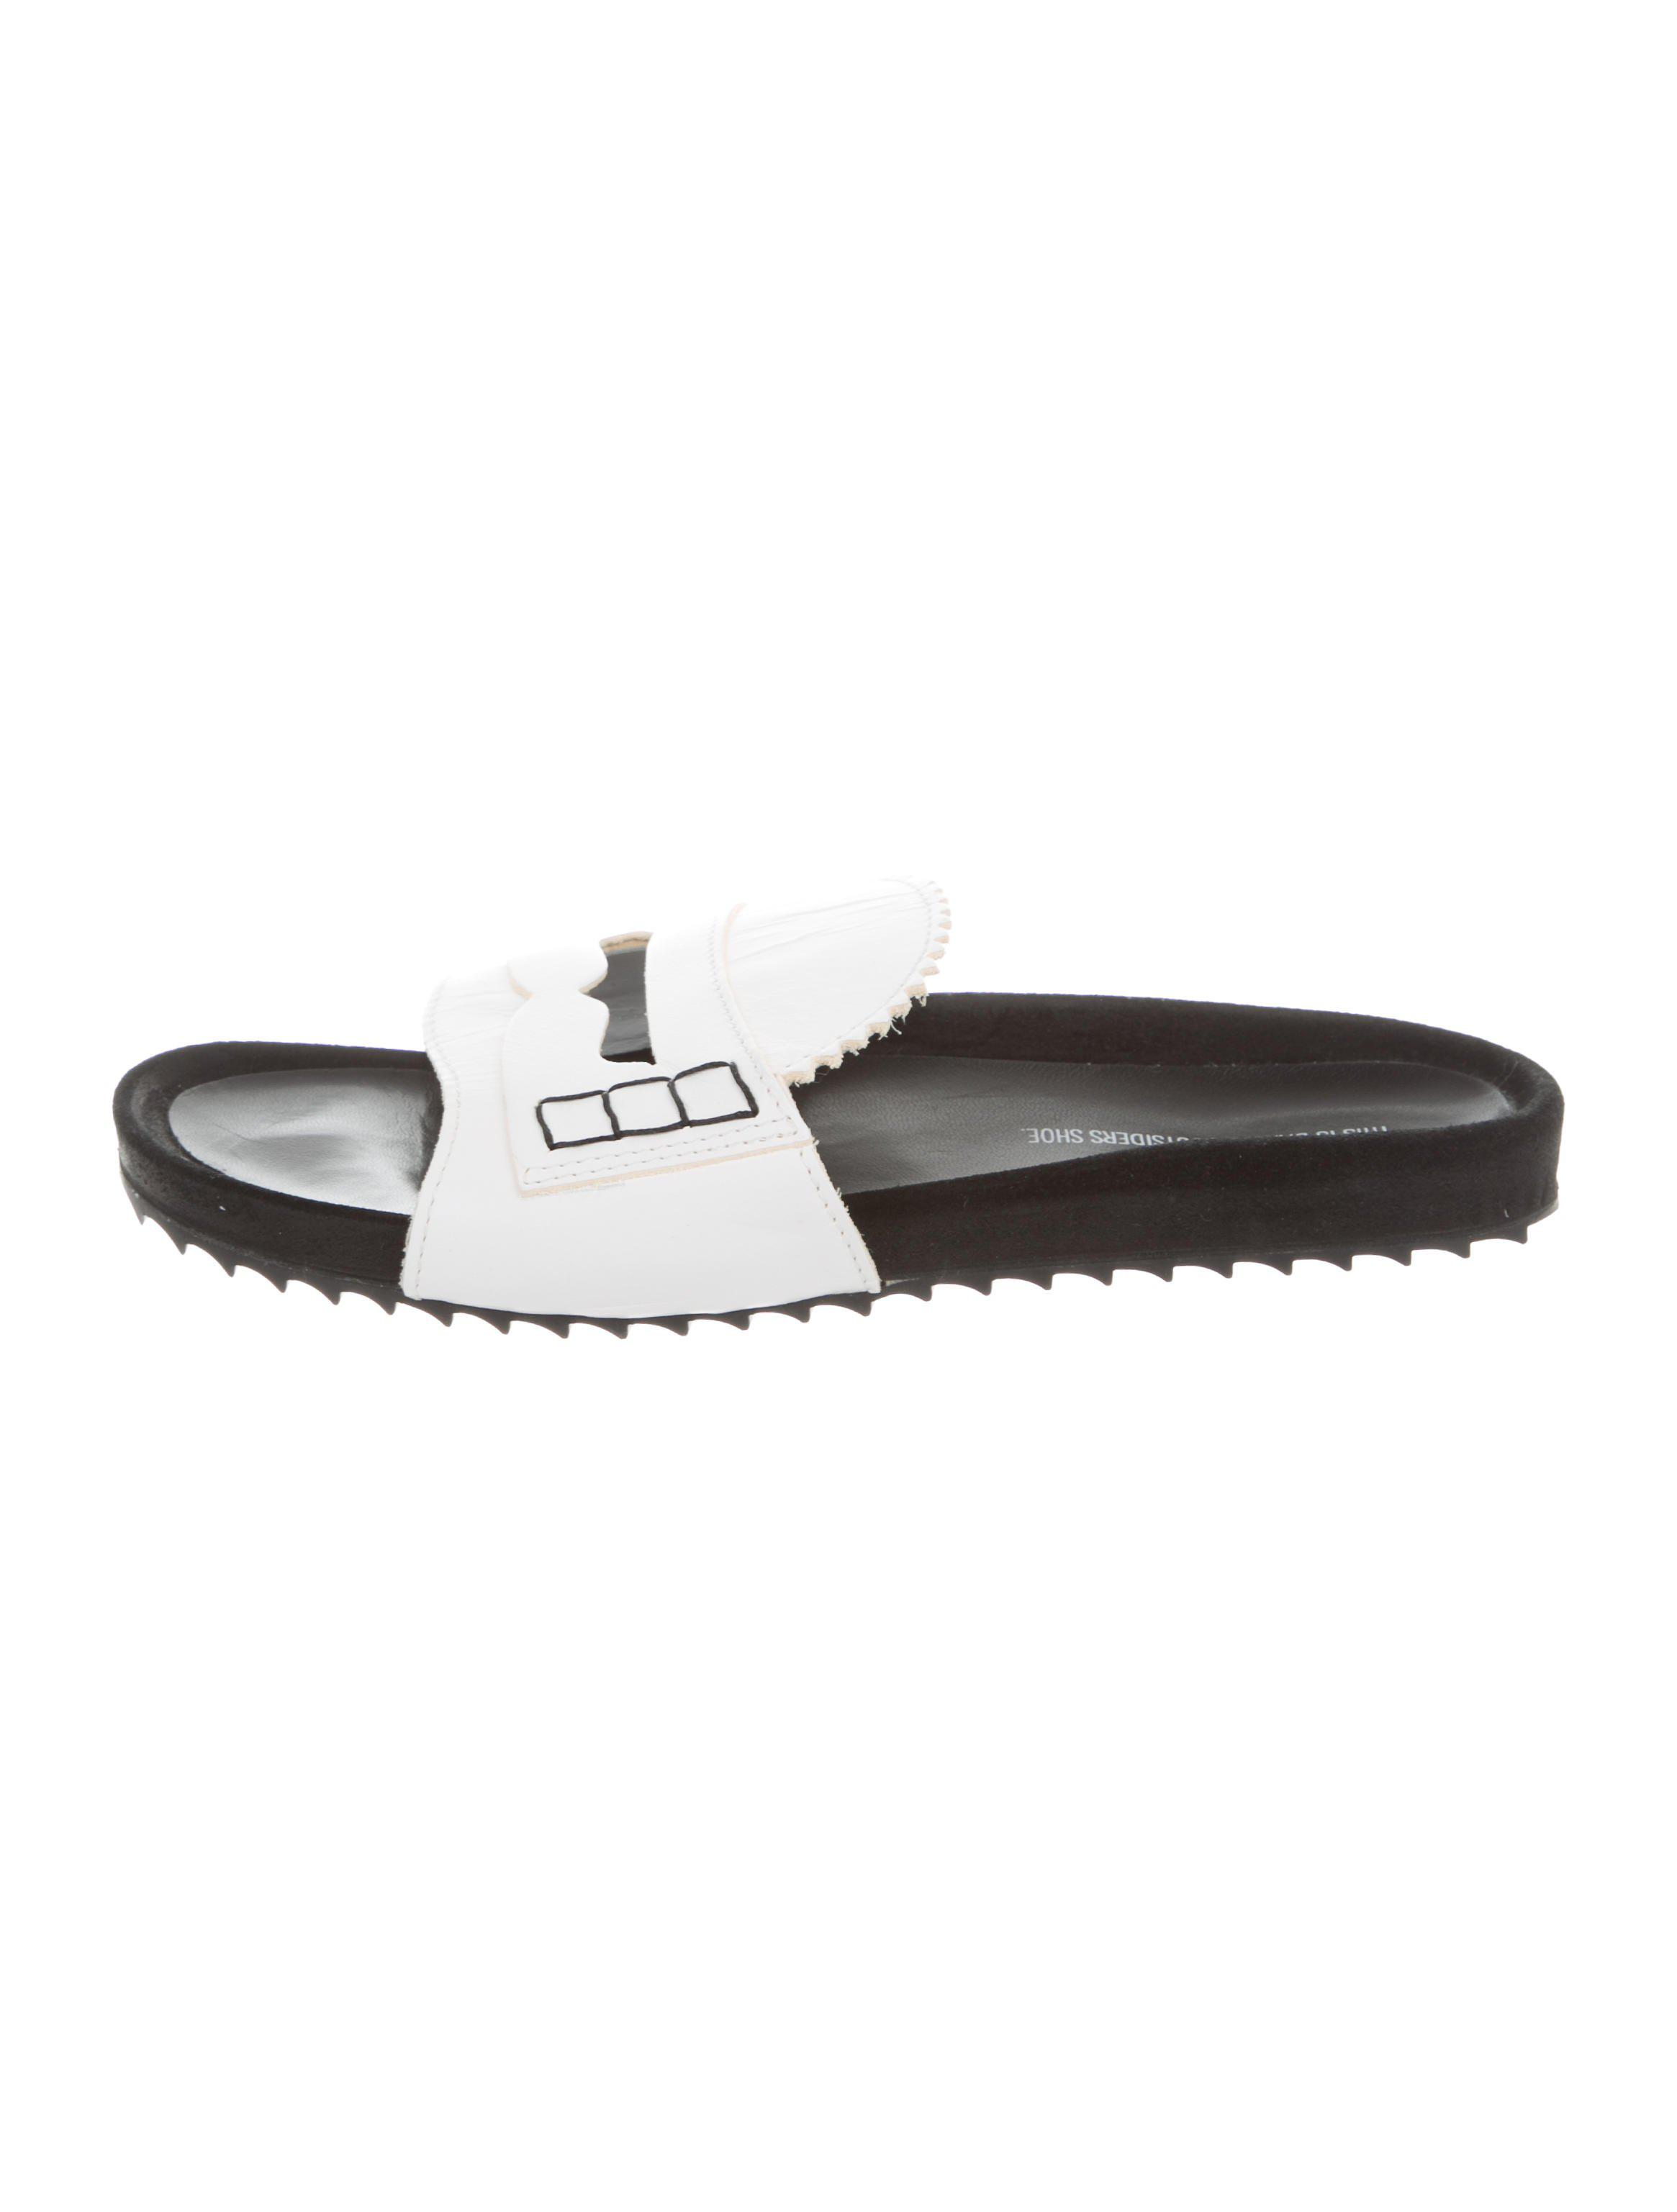 sale order cheapest price sale online Band of Outsiders Leather Slide Sandals best sale cheap price comfortable sale online clearance affordable ga104iarl